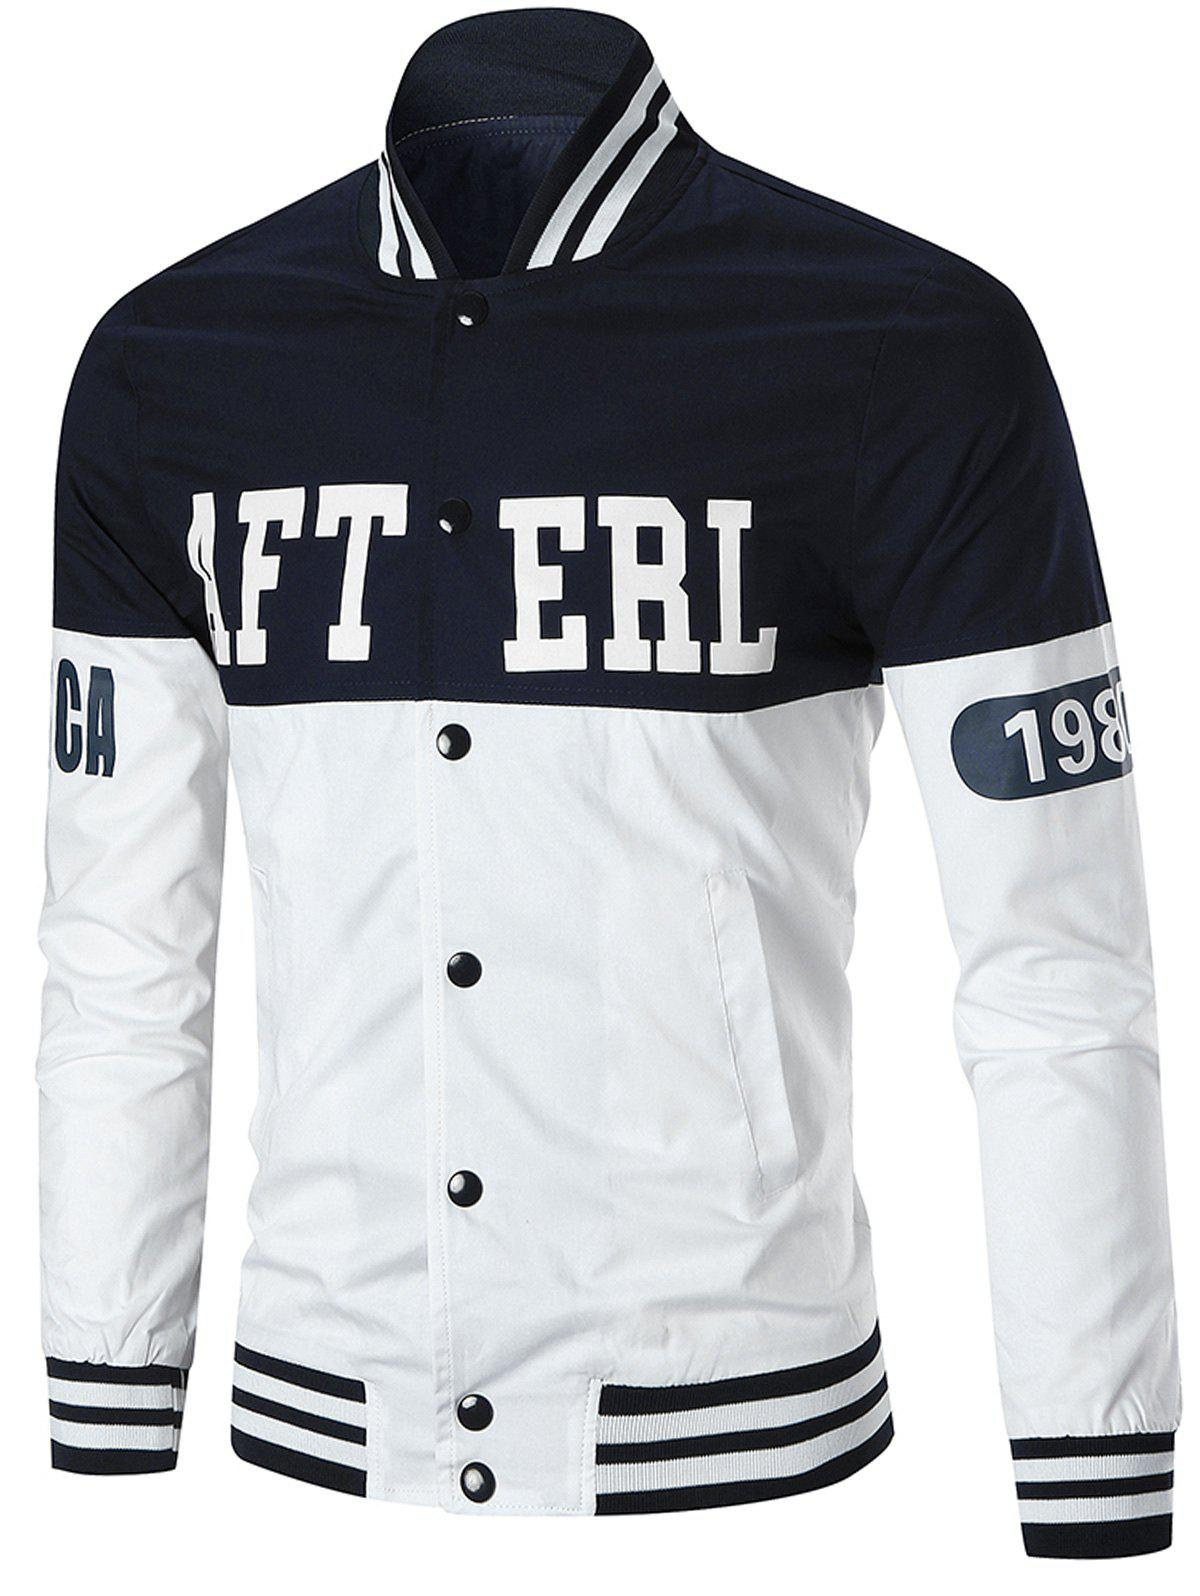 Letter Figure Print Limited Baseball JacketMEN<br><br>Size: 3XL; Color: WHITE; Clothes Type: Jackets; Style: Casual,Fashion,Streetwear; Material: Cotton,Polyester; Collar: Stand Collar; Shirt Length: Regular; Sleeve Length: Long Sleeves; Season: Fall,Spring; Closure Type: Zipper; Crafts: Printing; Occasion: Casual ,Club,Daily Use,Going Out,Sports; Weight: 0.5100kg; Package Contents: 1 x Jacket;